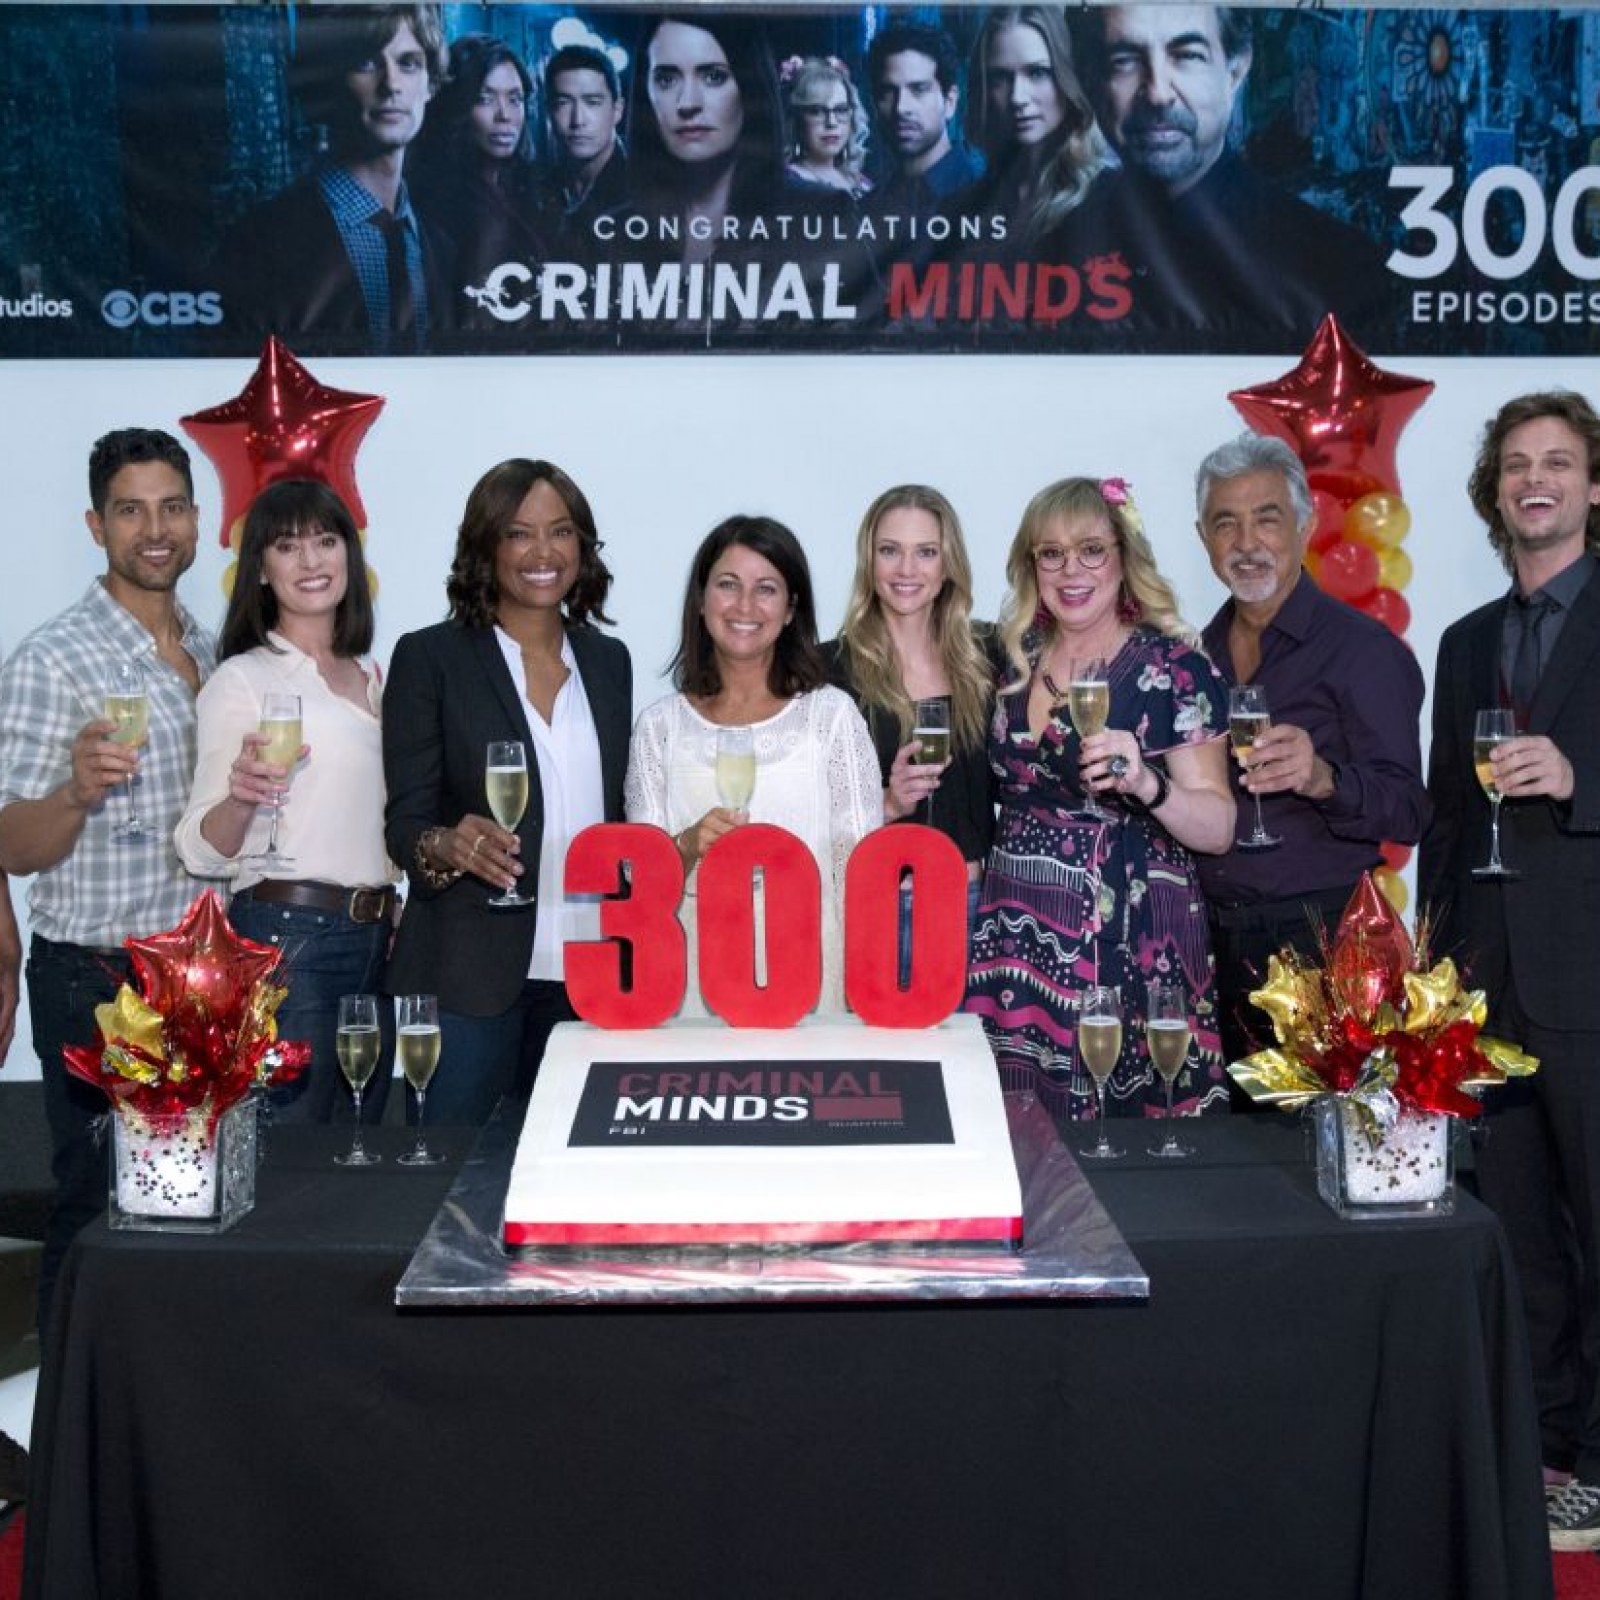 Criminal Minds' Spoilers: Season 14 and Everything We Know